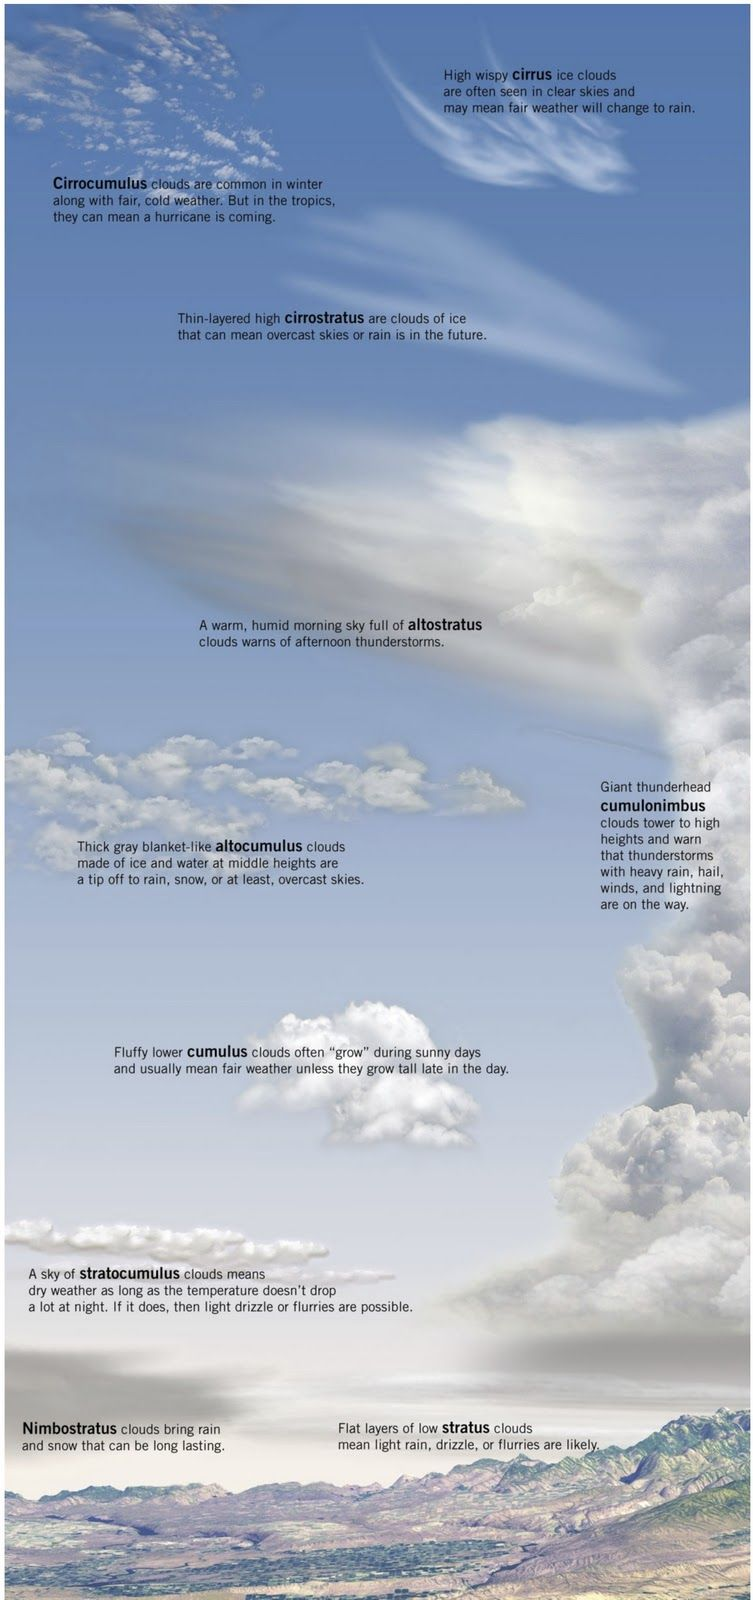 medium resolution of What do different clouds mean for the weather?   Kinds of clouds